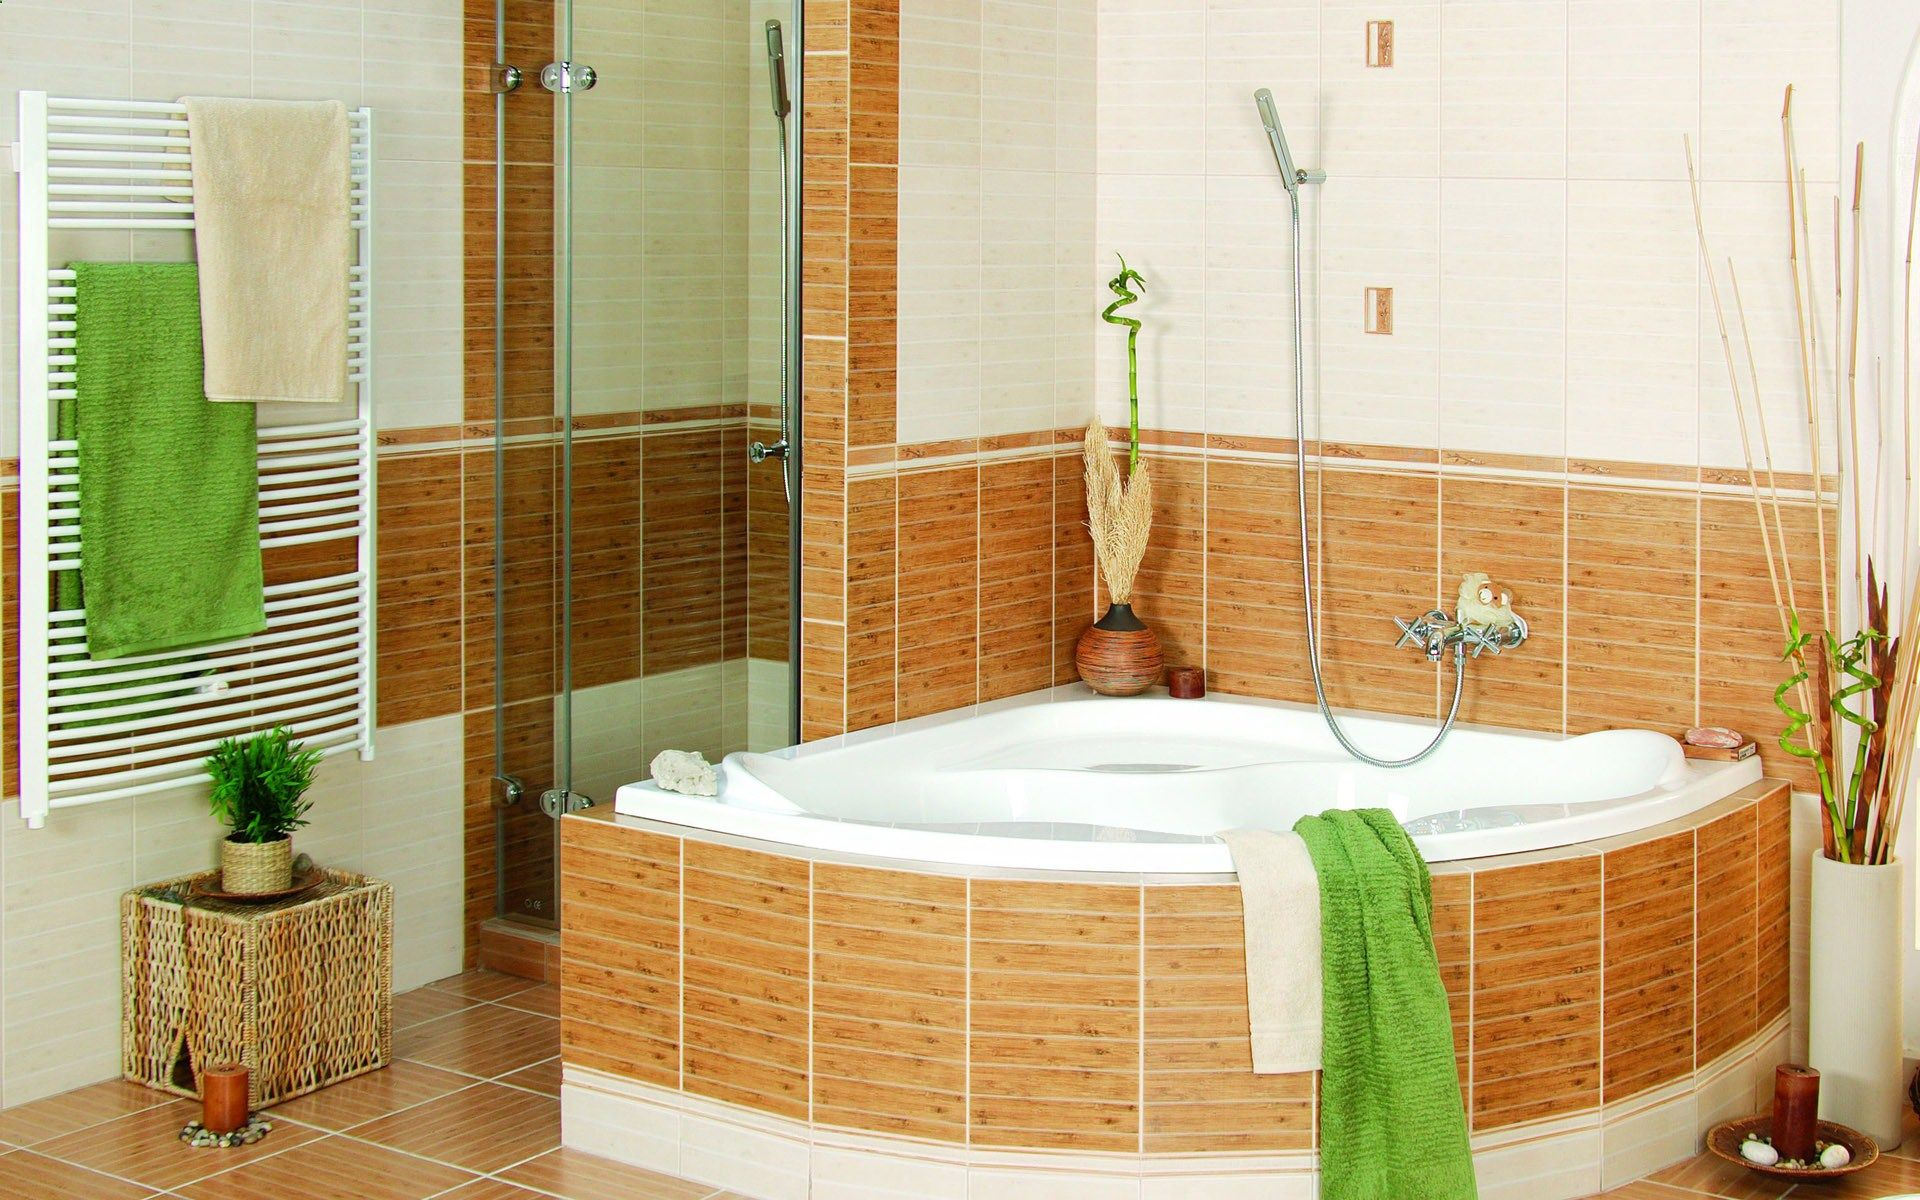 Bathroom Designs Decorate Small Bathroom Ideas Budget With Ceramic Floor White Color Designs Green Color Towel Nice Small Bathtub Nice Shower Picture Nice